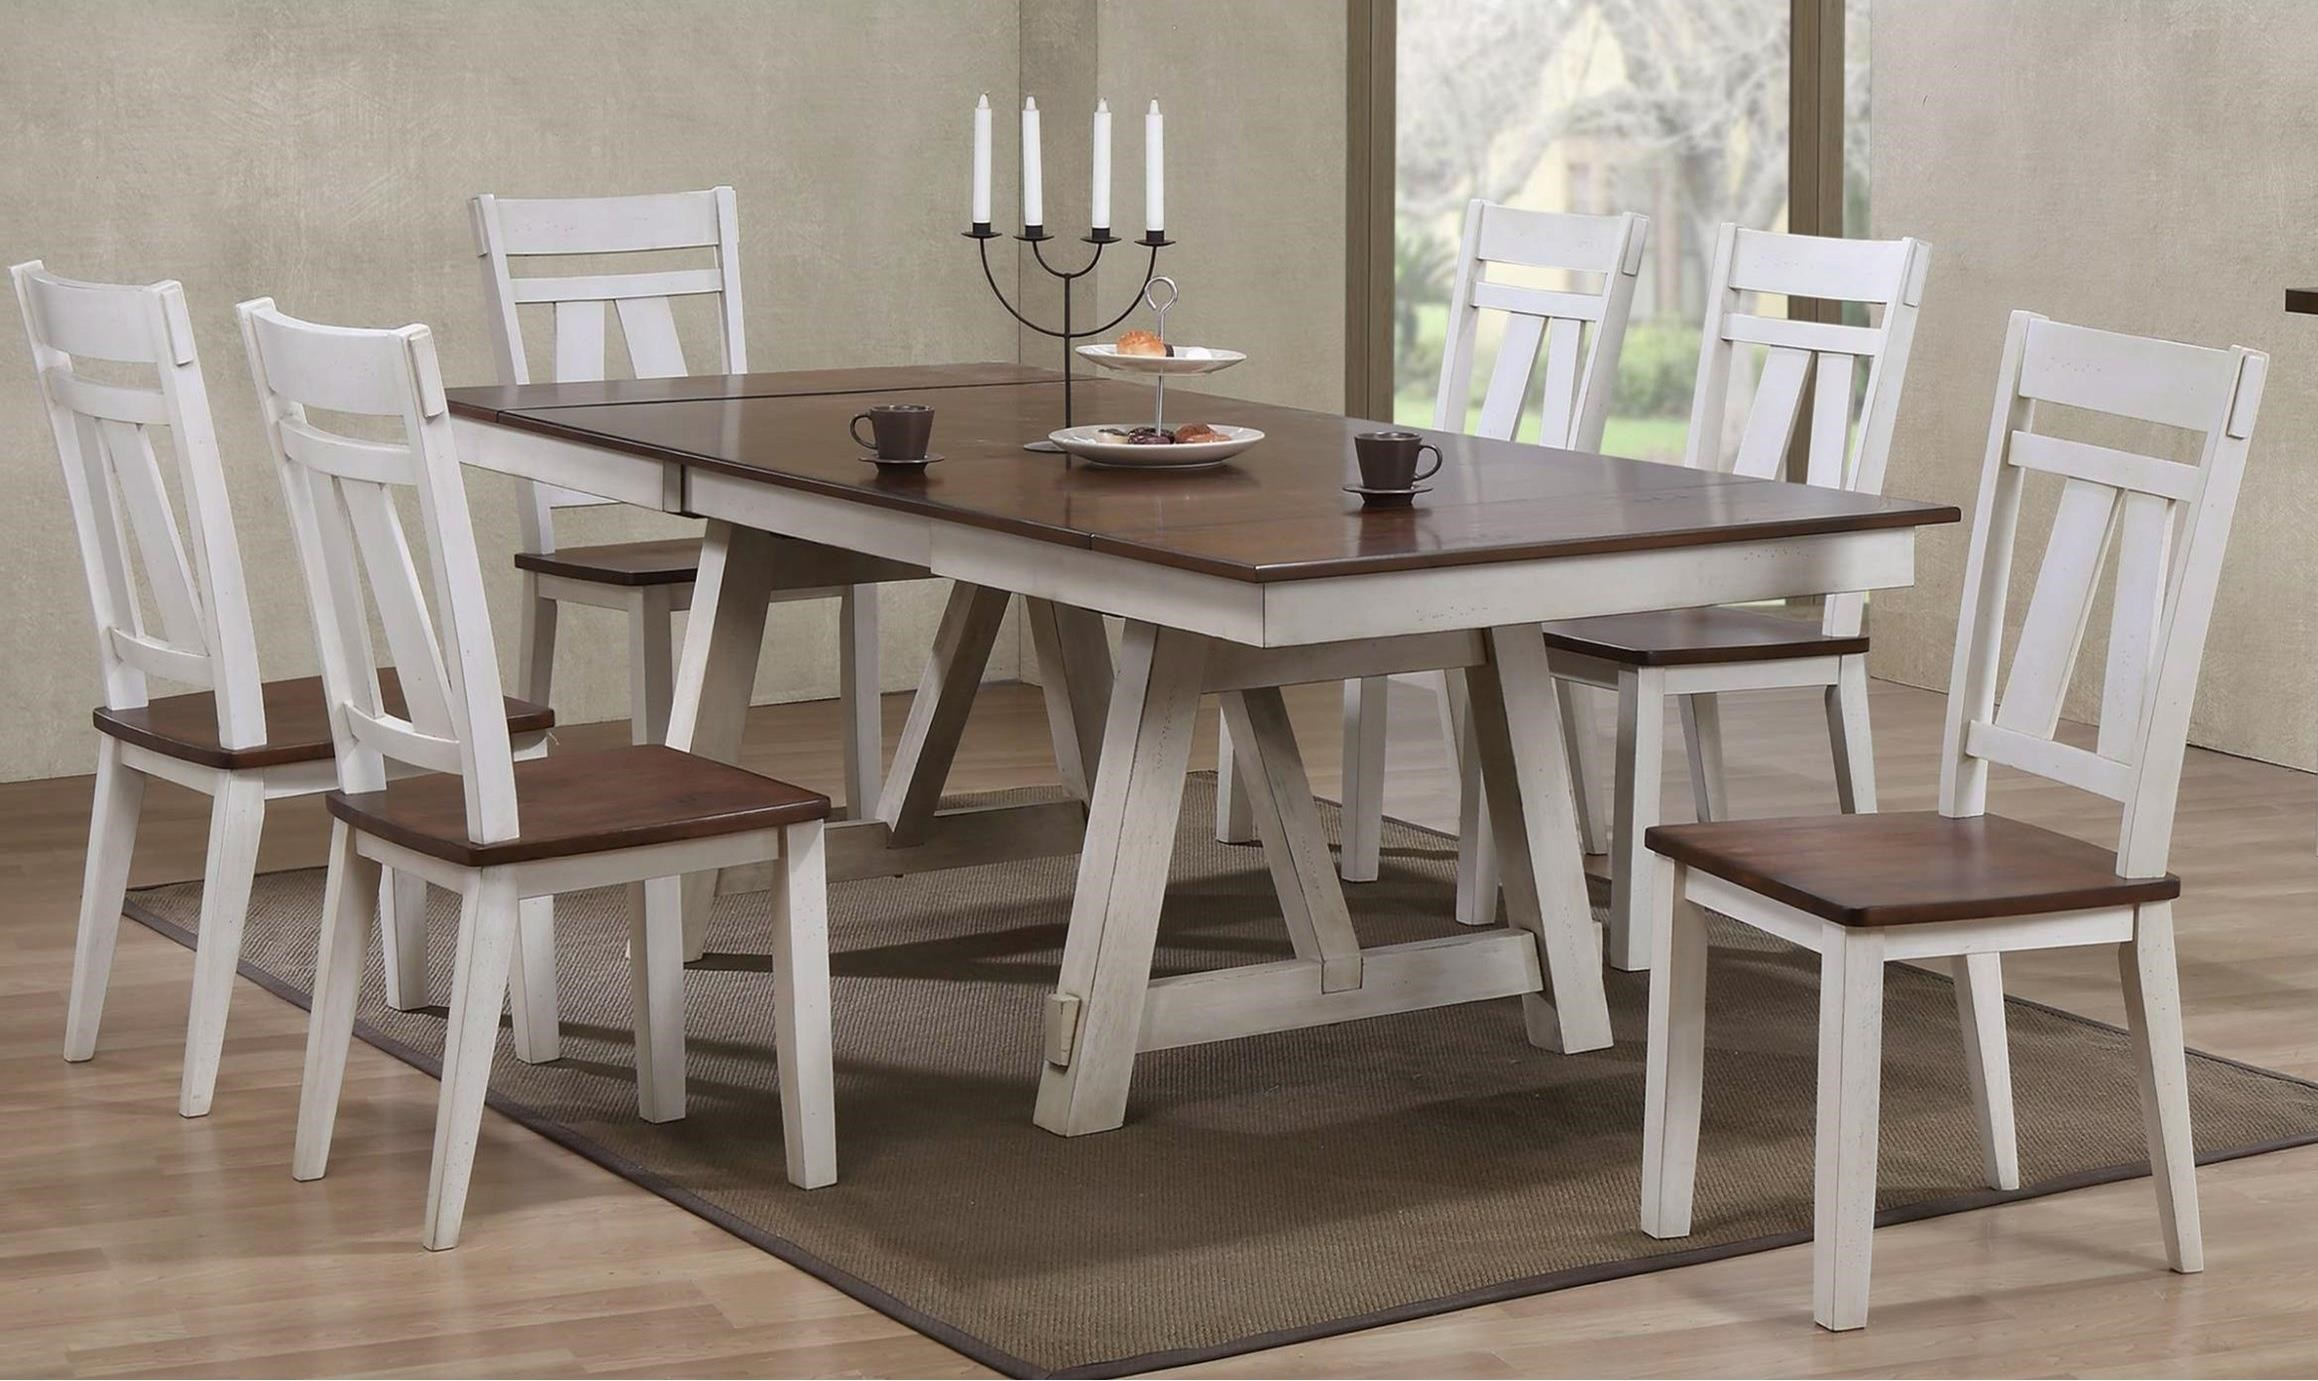 Bernards Winslow 7 Piece Two Tone Refectory Table Set Royal Furniture Dining 7 Or More Piece Sets